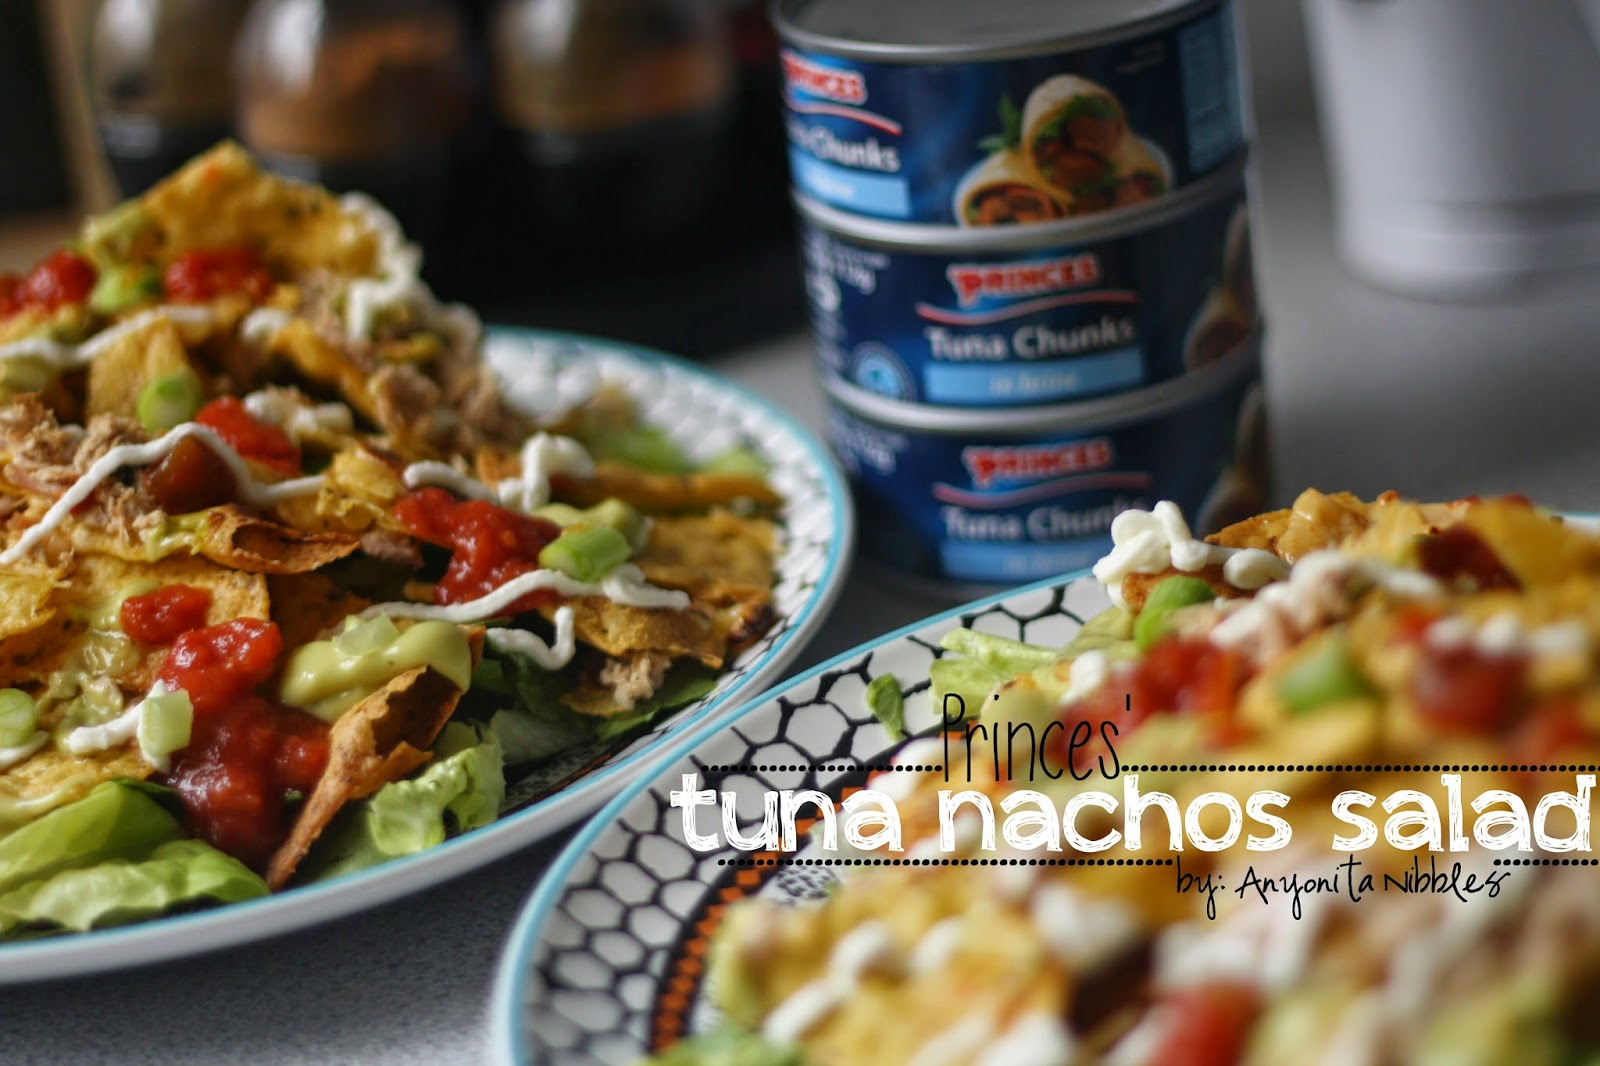 20 minute meal Princes Tuna Nacho Salad from Anyonita-nibbles.co.uk